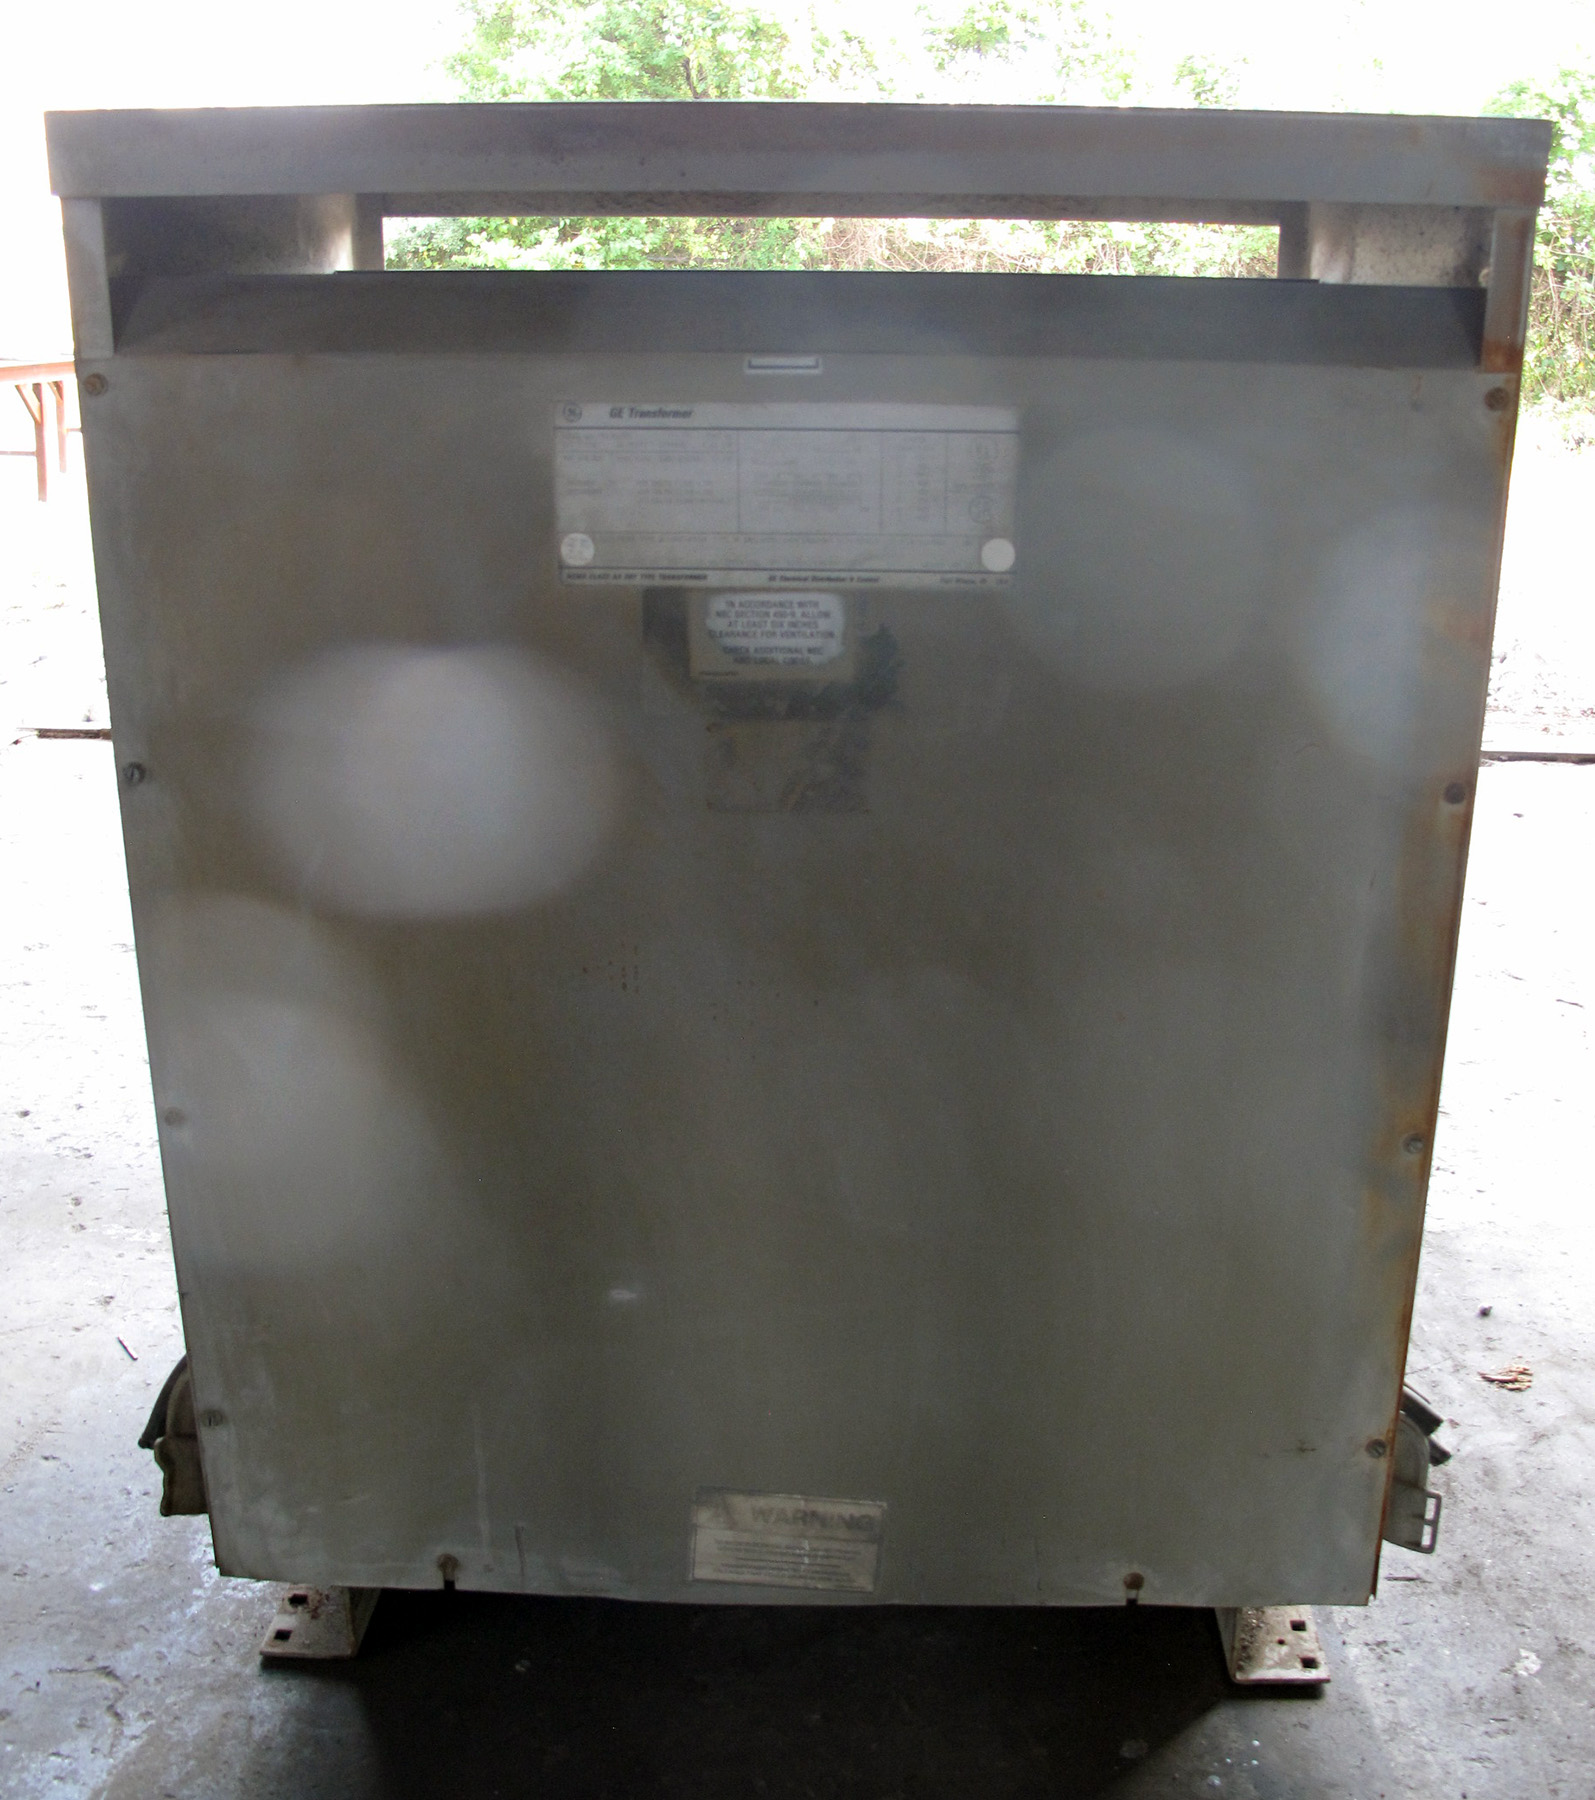 PRE-OWNED, 112.5 KVA GE MODEL 9T23B3855 TRANSFORMER, PRIMARY 480, SECONDARY 480/277, MULTI TAP